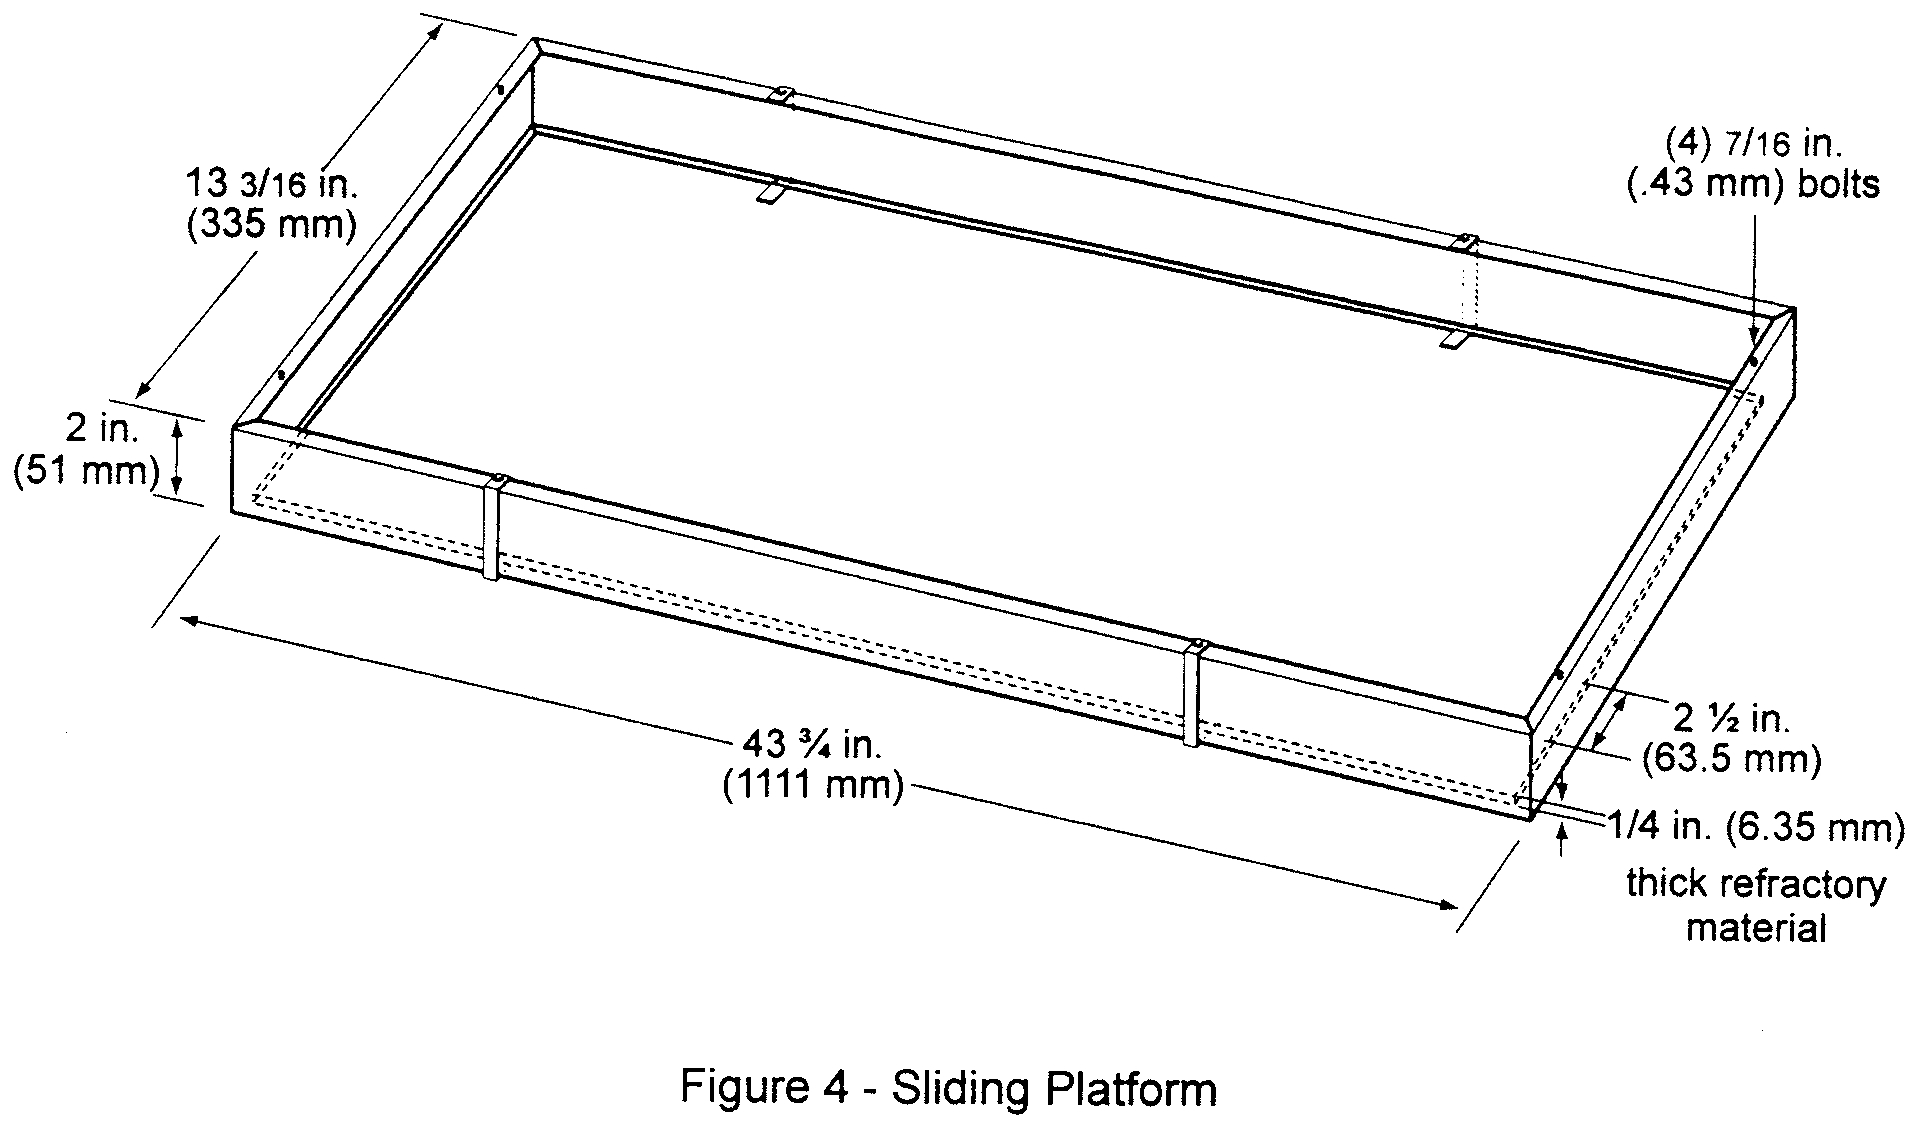 Graphic of (i) The sliding platform serves as the housing for test specimen placement. Brackets may be attached (via wing nuts) to the top lip of the platform in order to accommodate various thicknesses of test specimens. Place the test specimens on a sheet of Kaowool M TM board or 1260 Standard Board (manufactured by Thermal Ceramics and available in Europe), or equivalent, either resting on the bottom lip of the sliding platform or on the base of the brackets. It may be necessary to use multiple sheets of material based on the thickness of the test specimen (to meet the sample height requirement). Typically, these non-combustible sheets of material are available in 1/4 inch (6 mm) thicknesses. See figure 4. A sliding platform that is deeper than the 2-inch (50.8mm) platform shown in figure 4 is also acceptable as long as the sample height requirement is met.